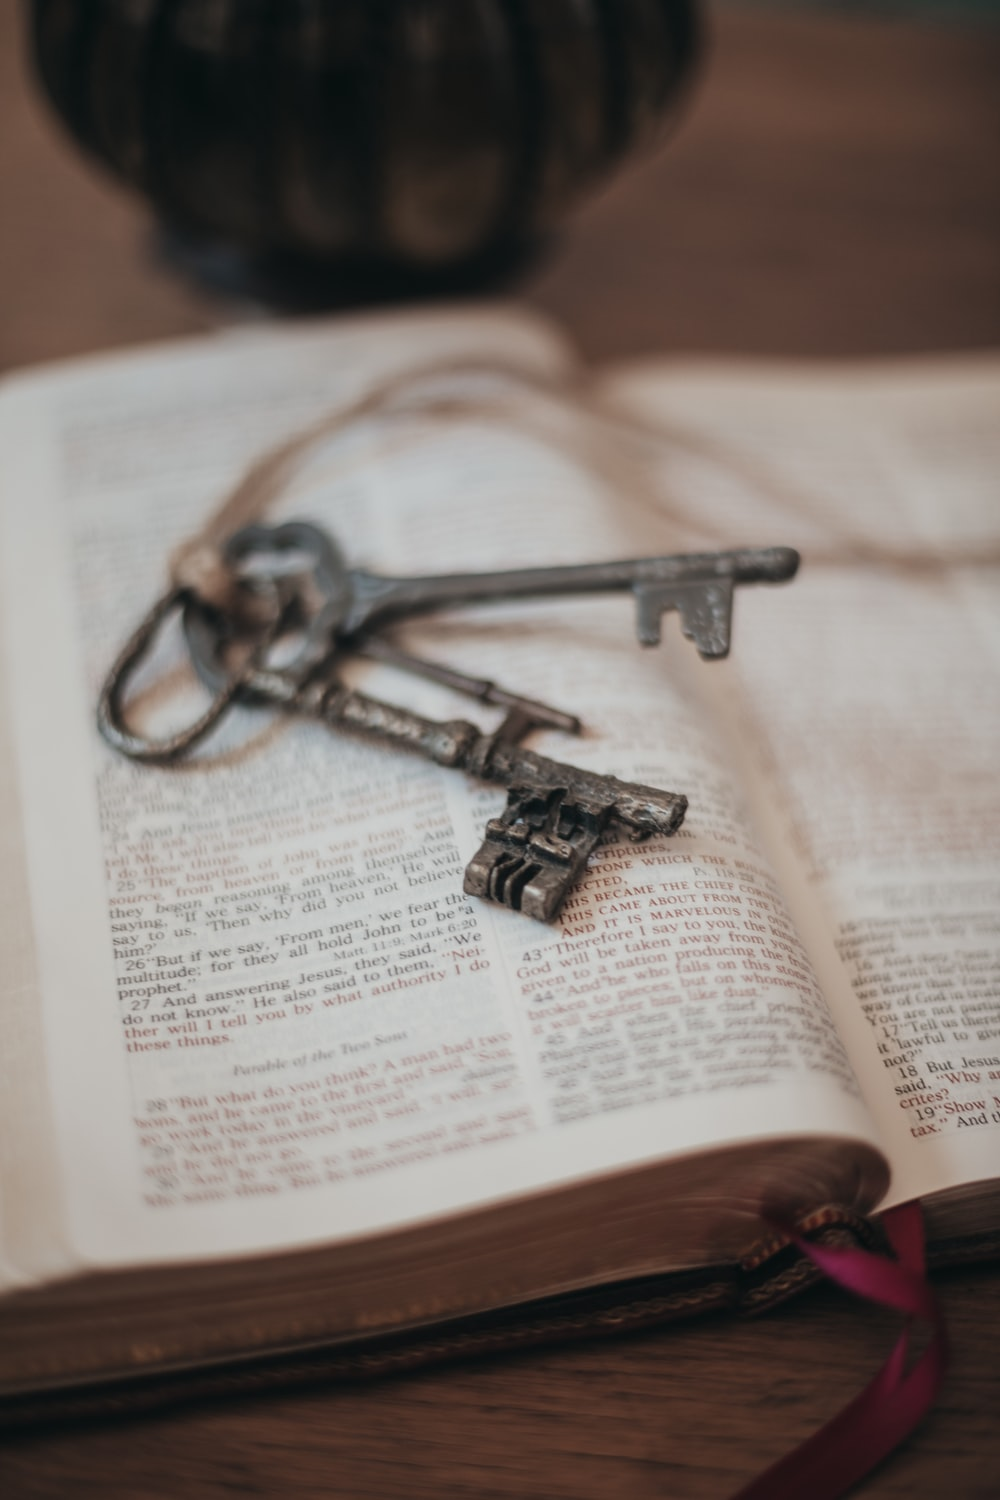 silver skeleton key on book page